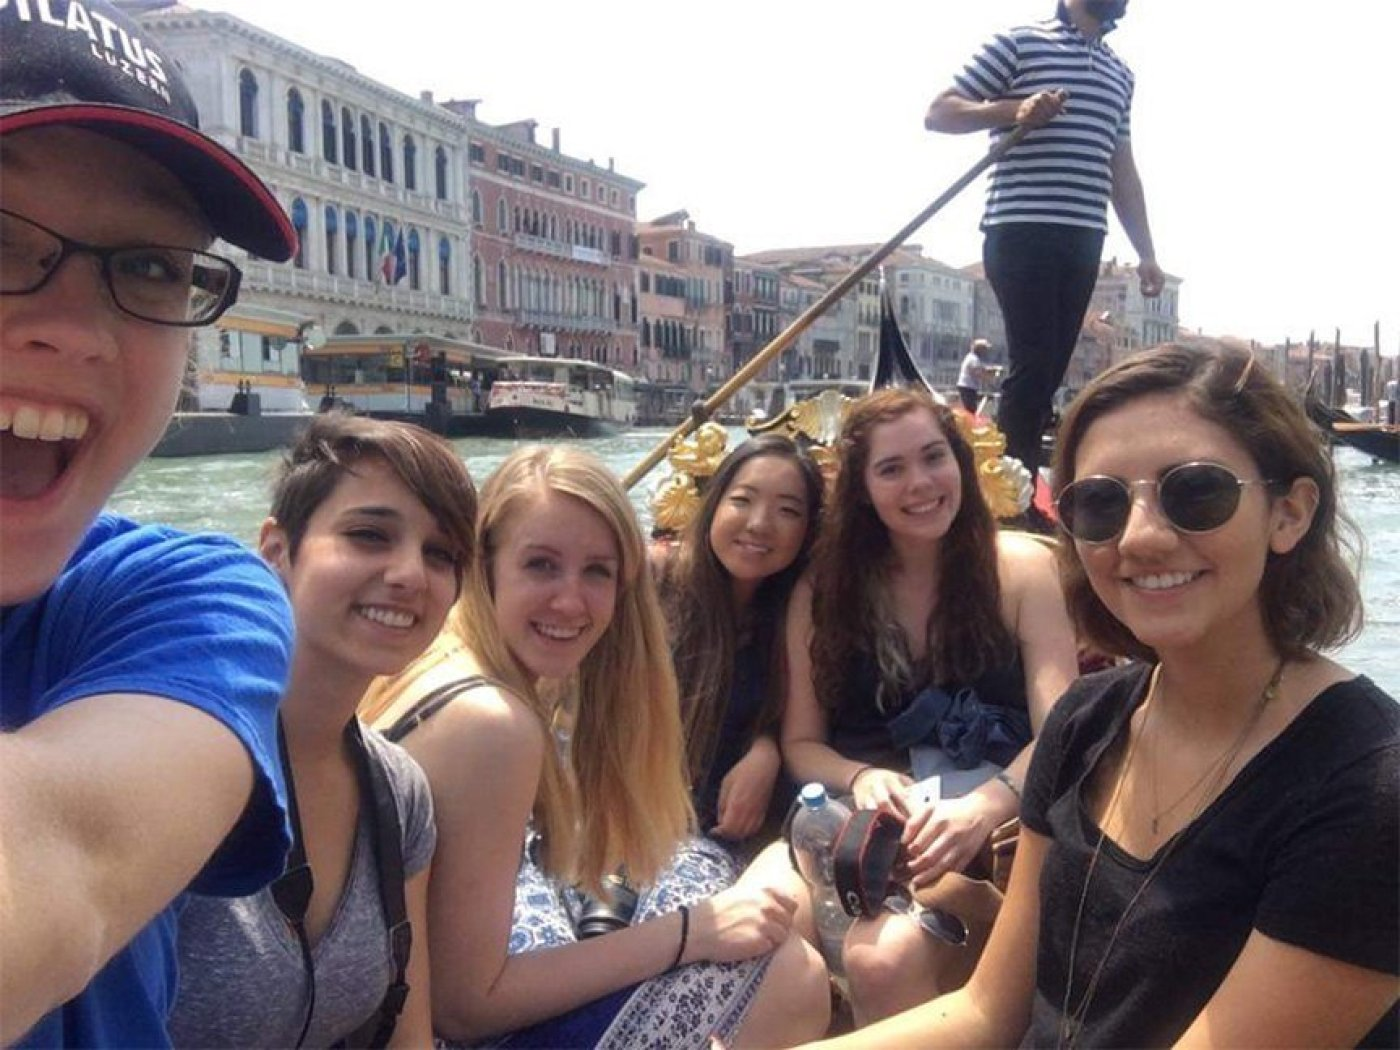 Gondola Ride with friends